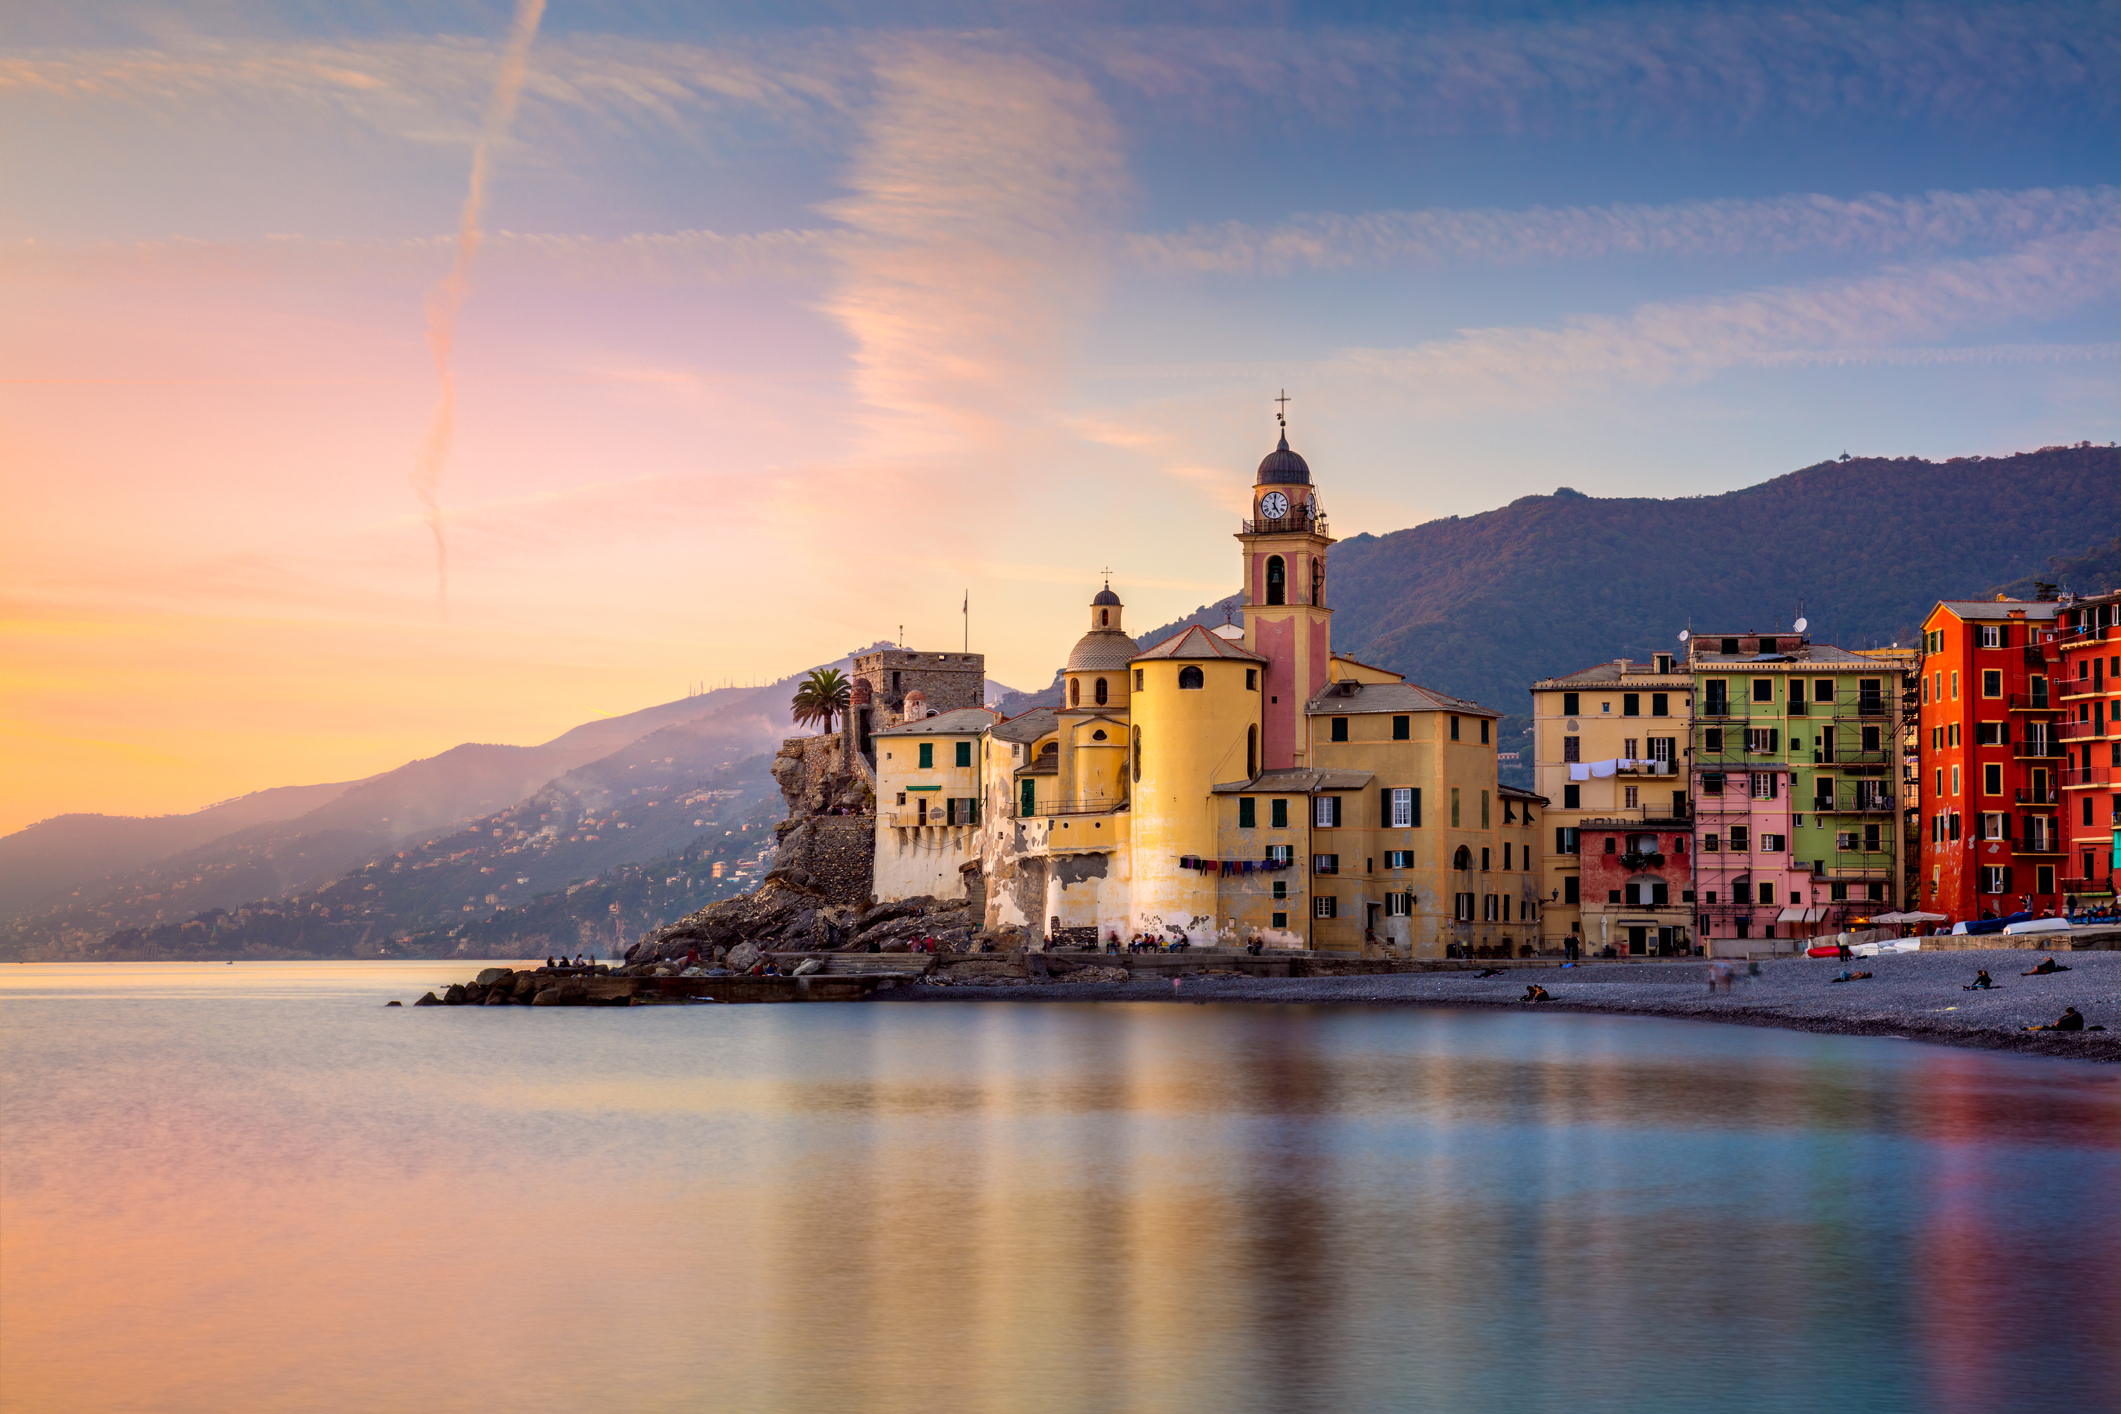 Beautiful Small Mediterranean Town at the sunrise time - Camogli, Italy, European travel (iStock)